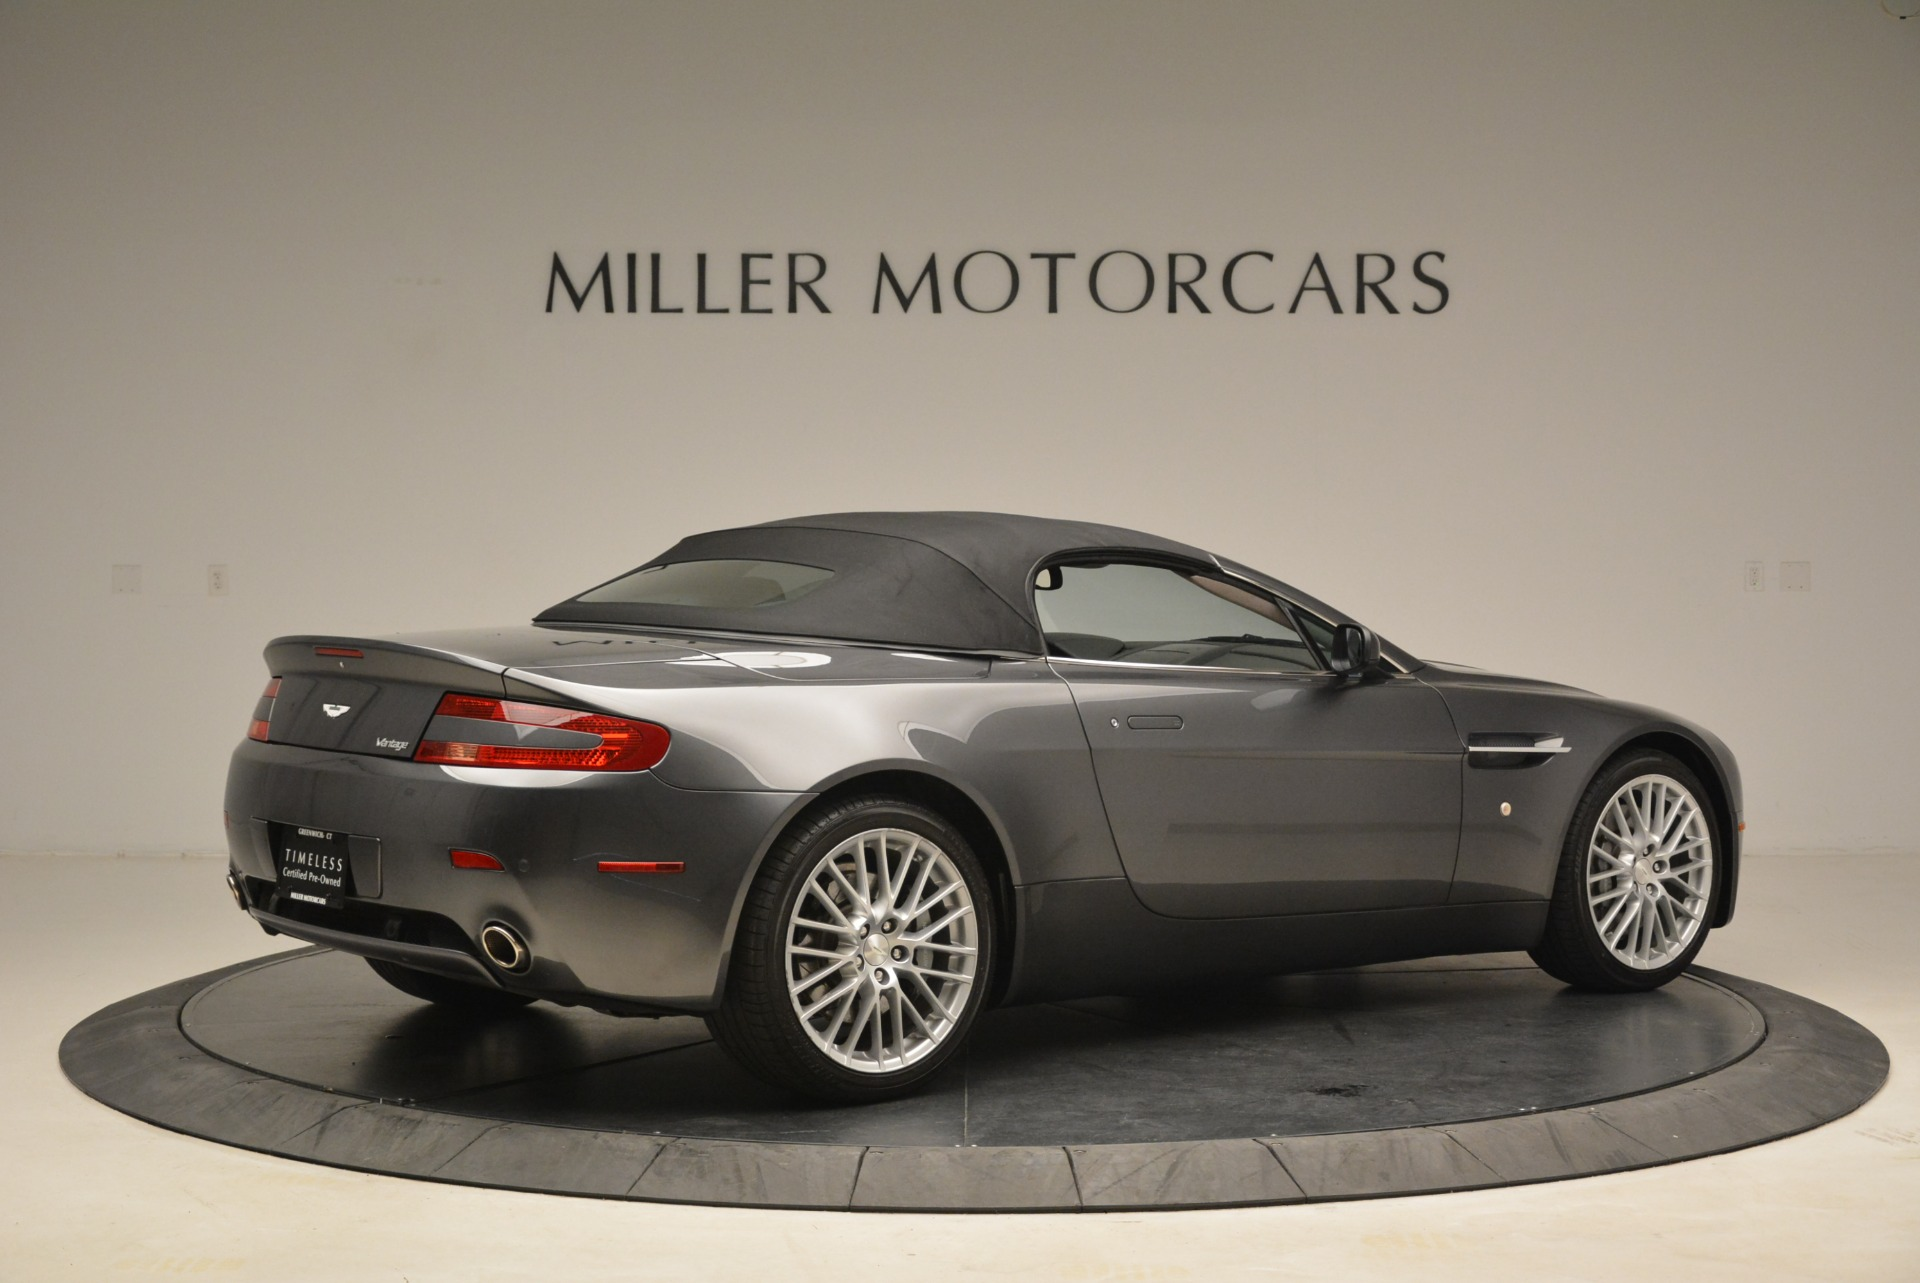 Used 2009 Aston Martin V8 Vantage Roadster For Sale In Greenwich, CT 2123_p20